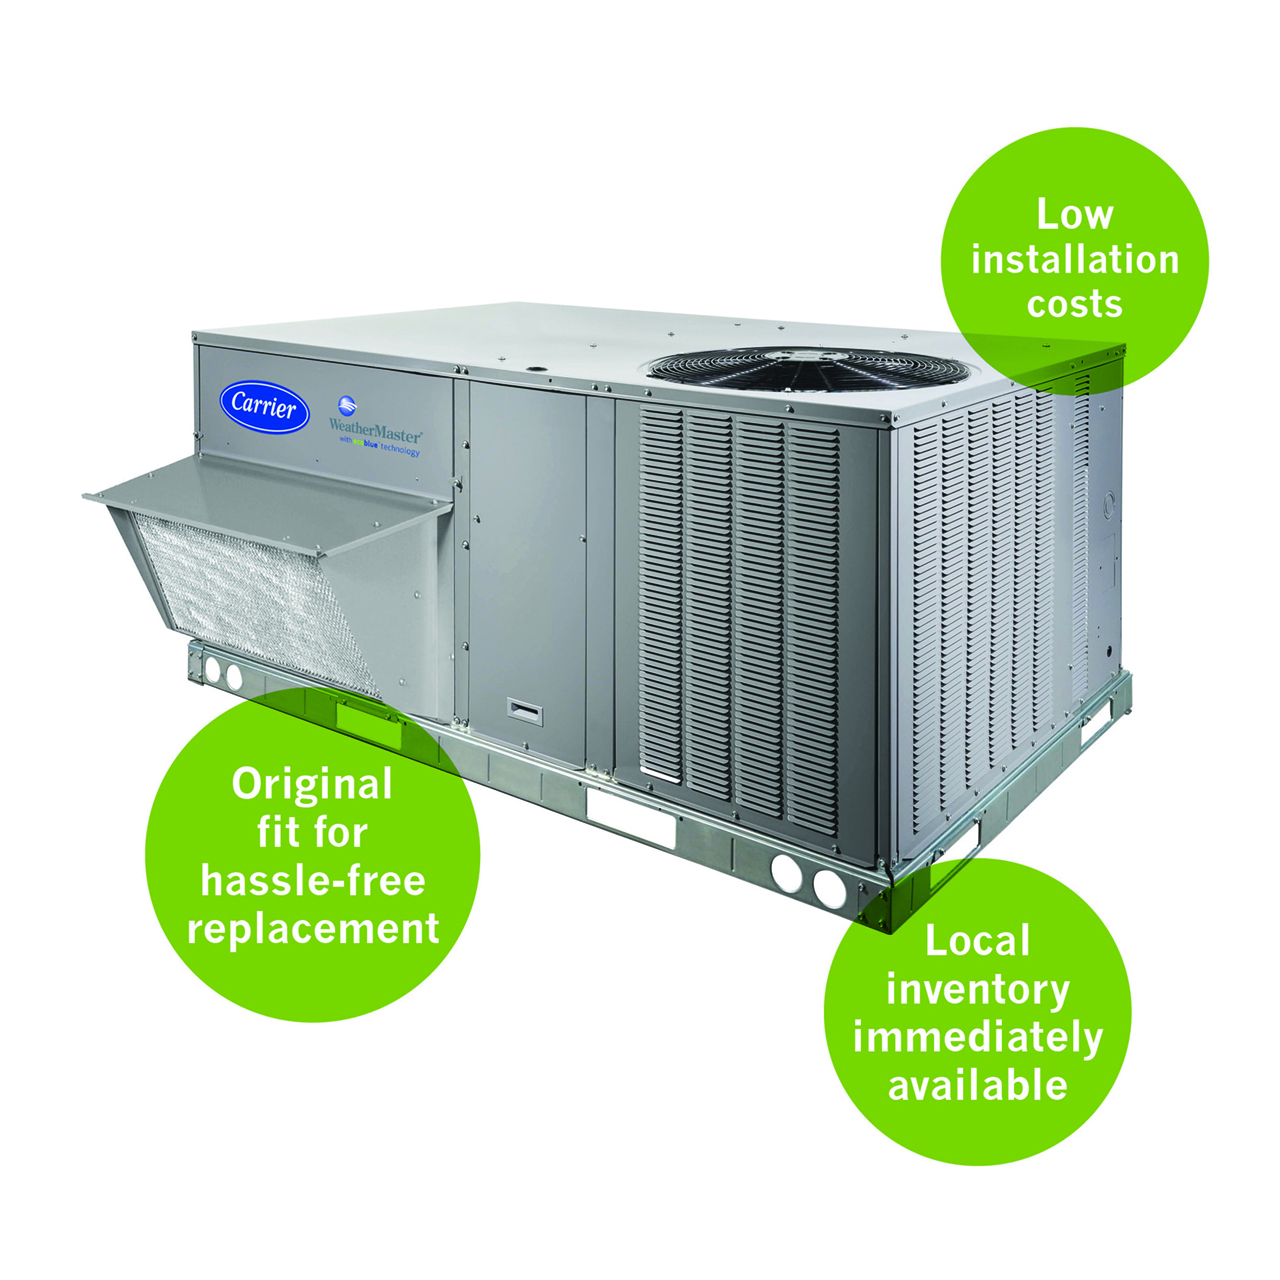 Exclusive, new EcoBlue™ Technology was designed to improve performance and efficiency while decreasing maintenance and installation costs.